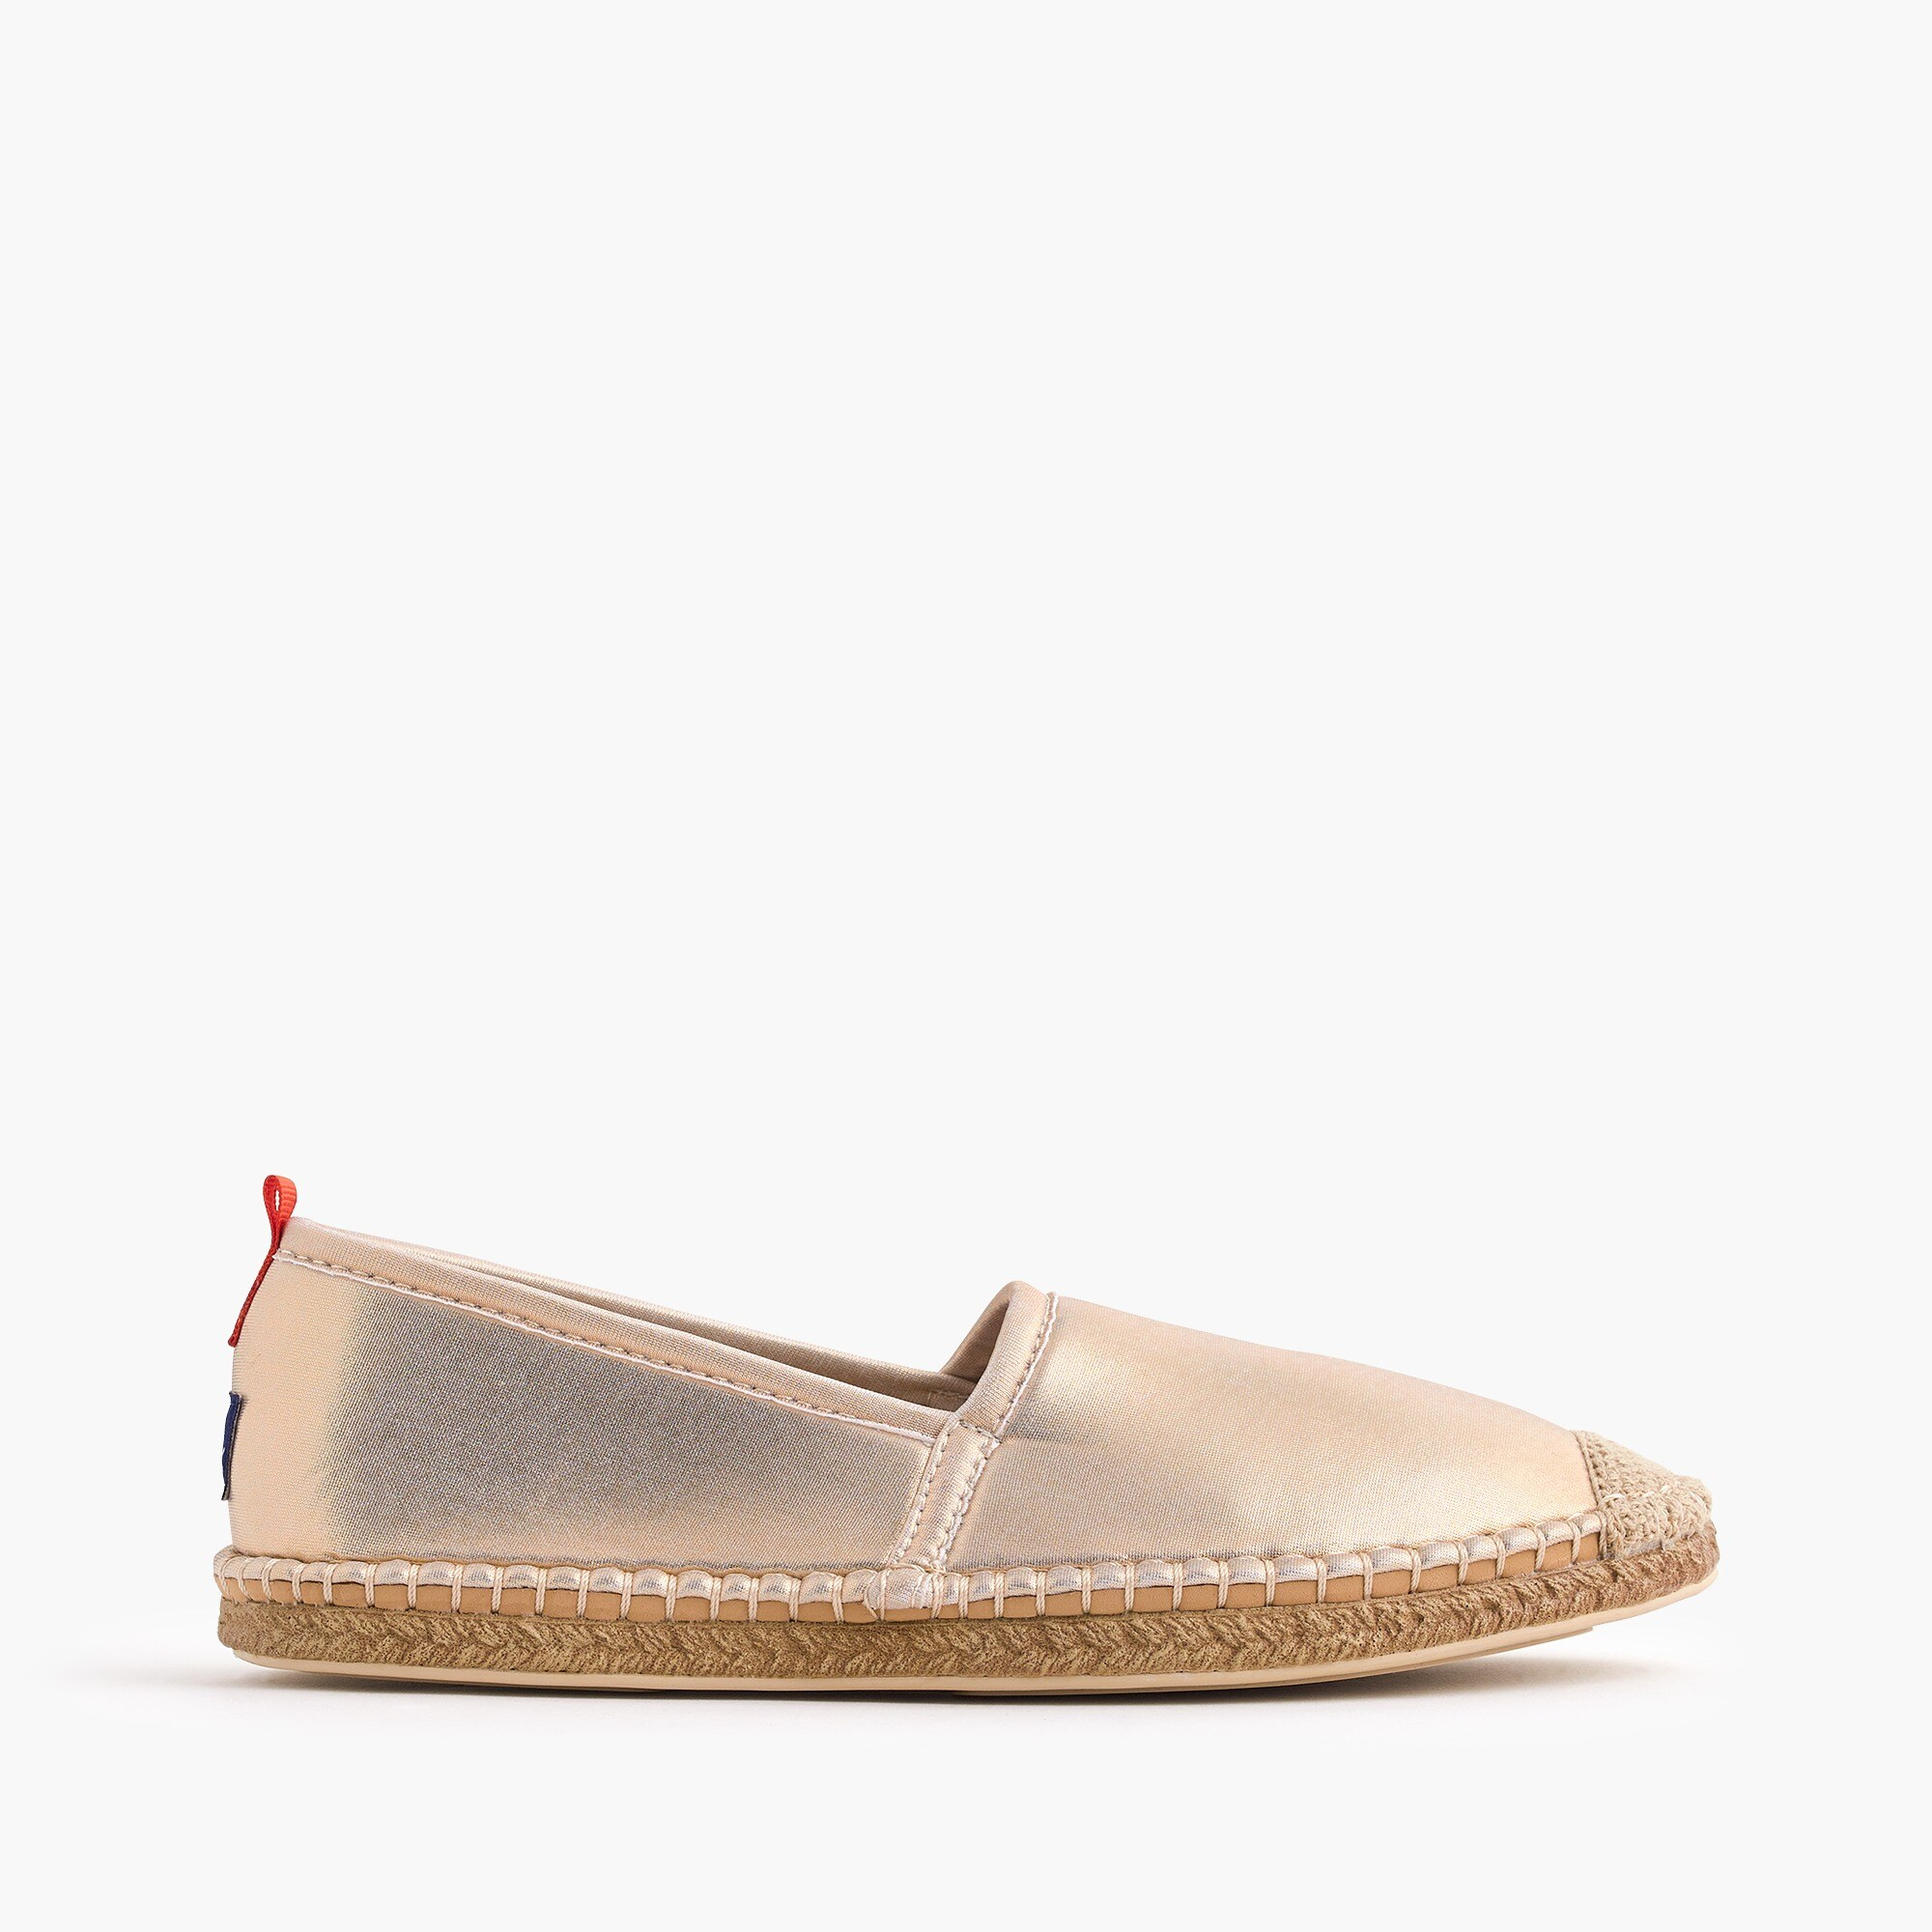 Image 2 for Sea Star® Beachcomber espadrille water shoes